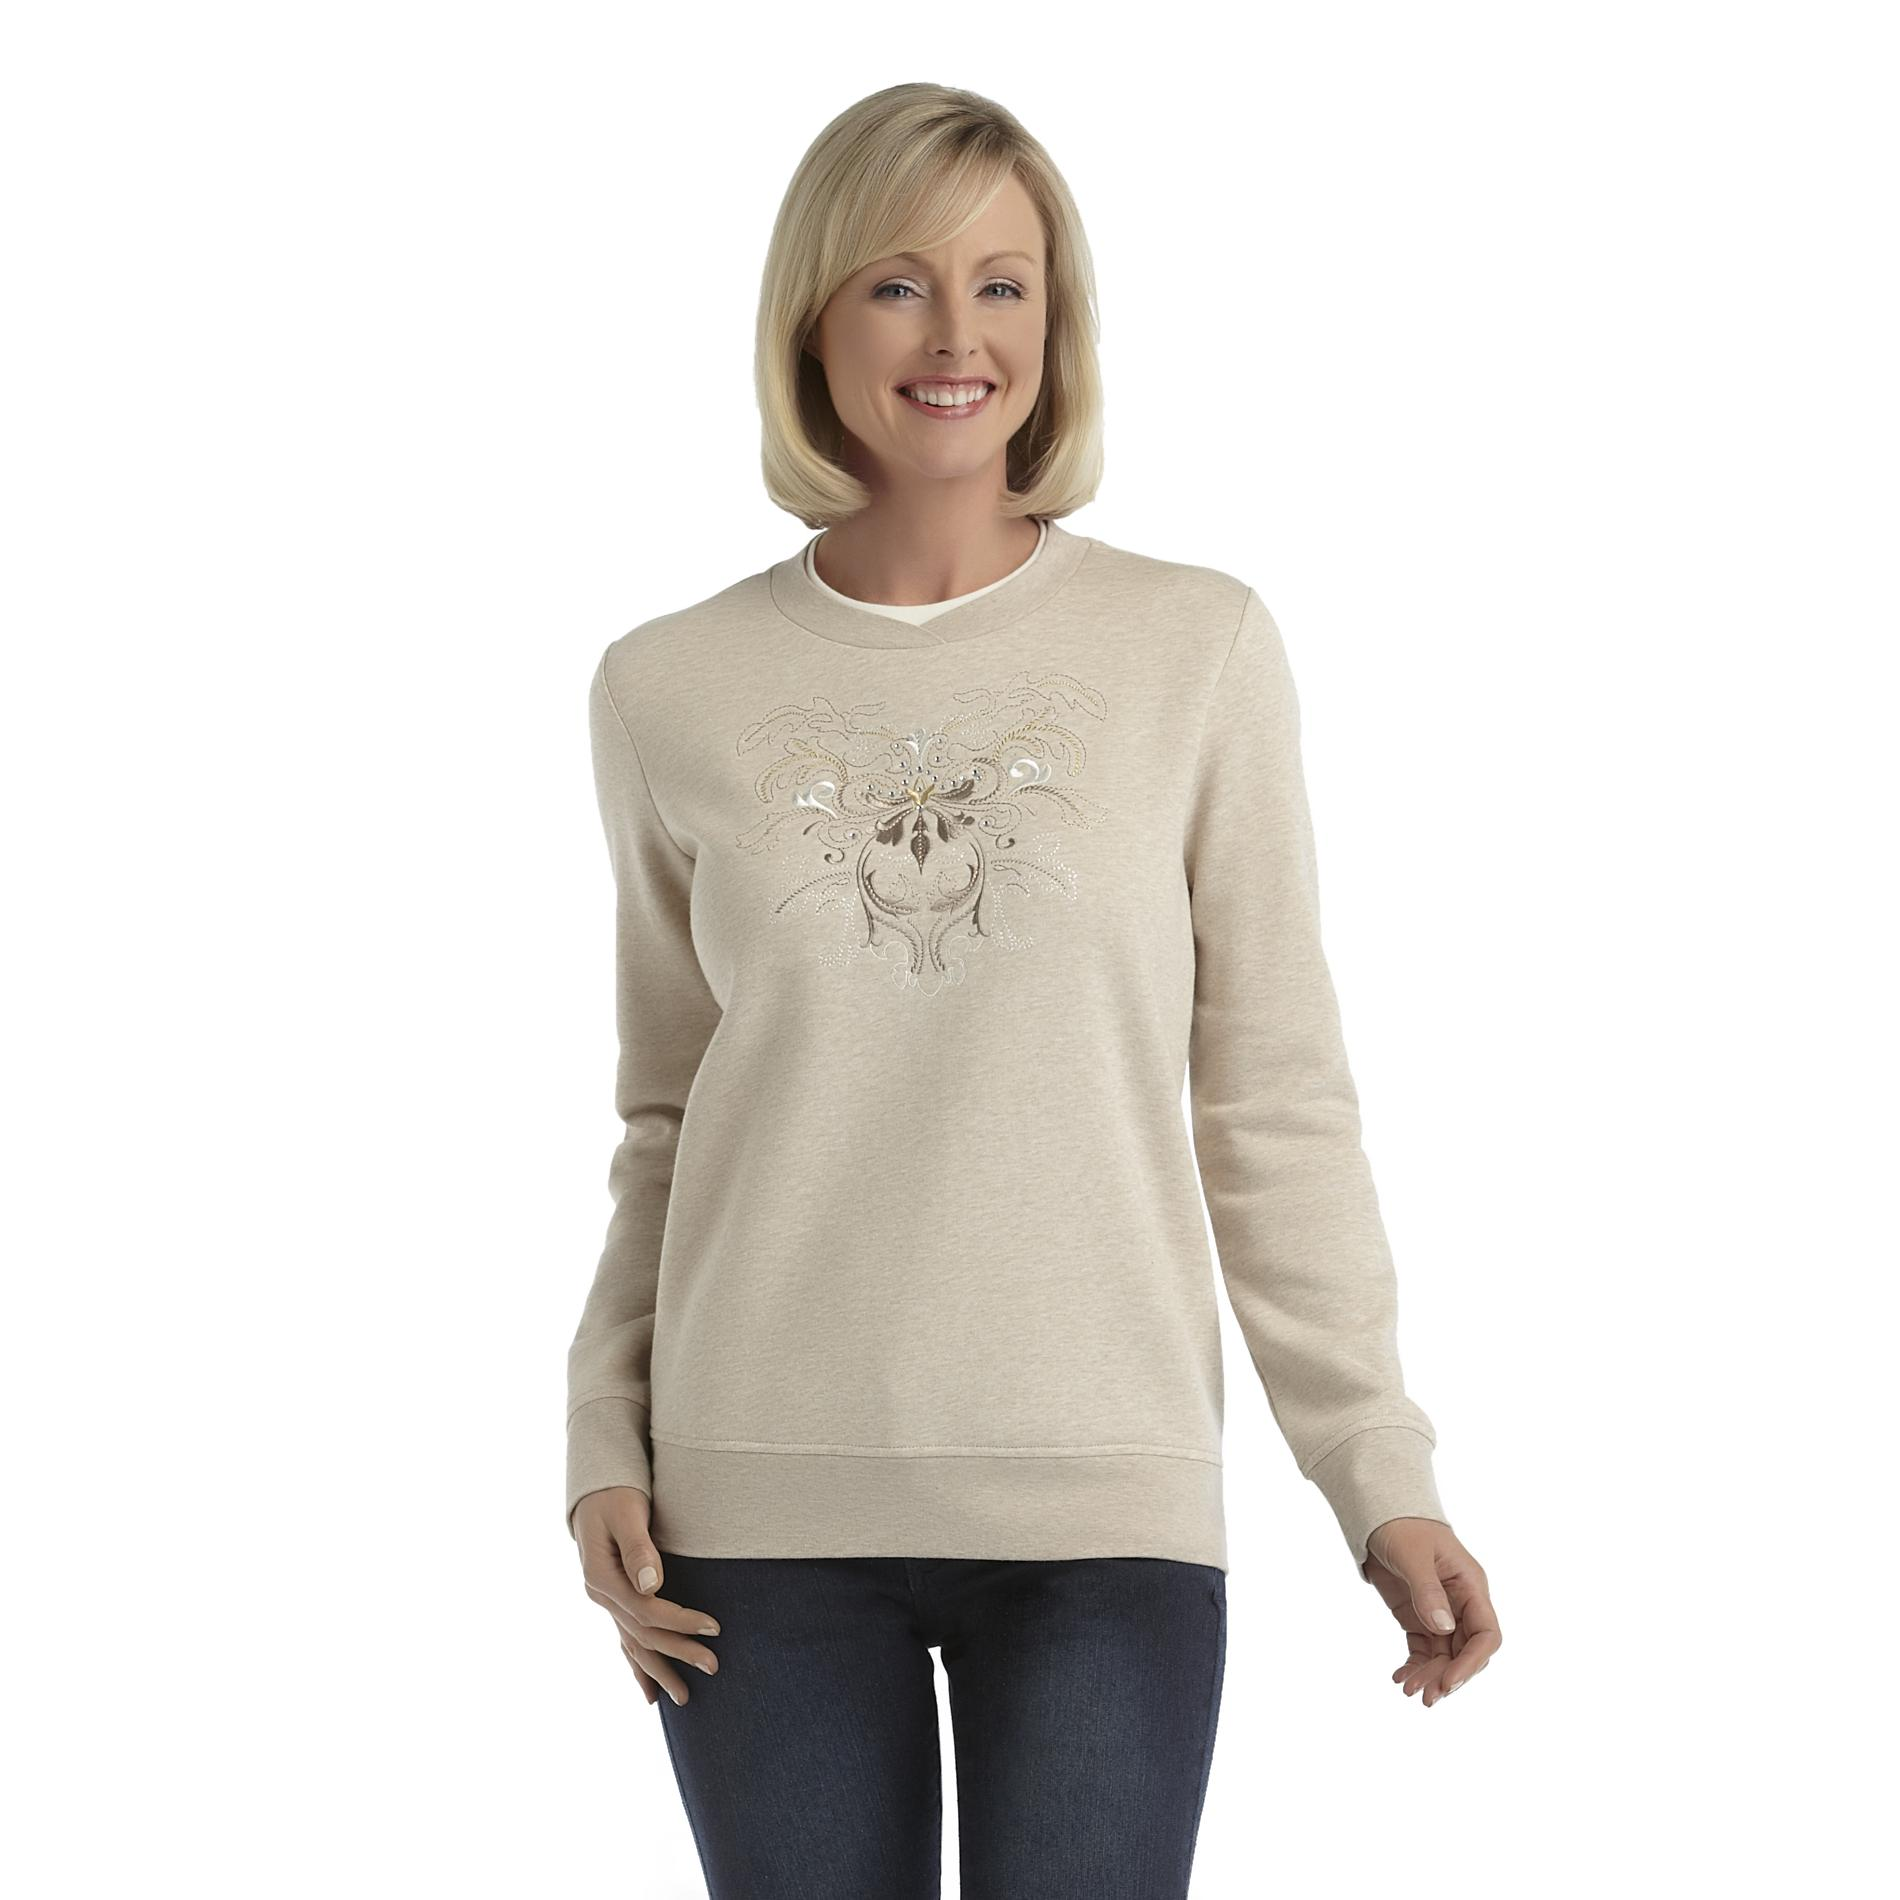 Laura Scott Women's Fleece Holiday Sweatshirt - Scrollwork at Sears.com